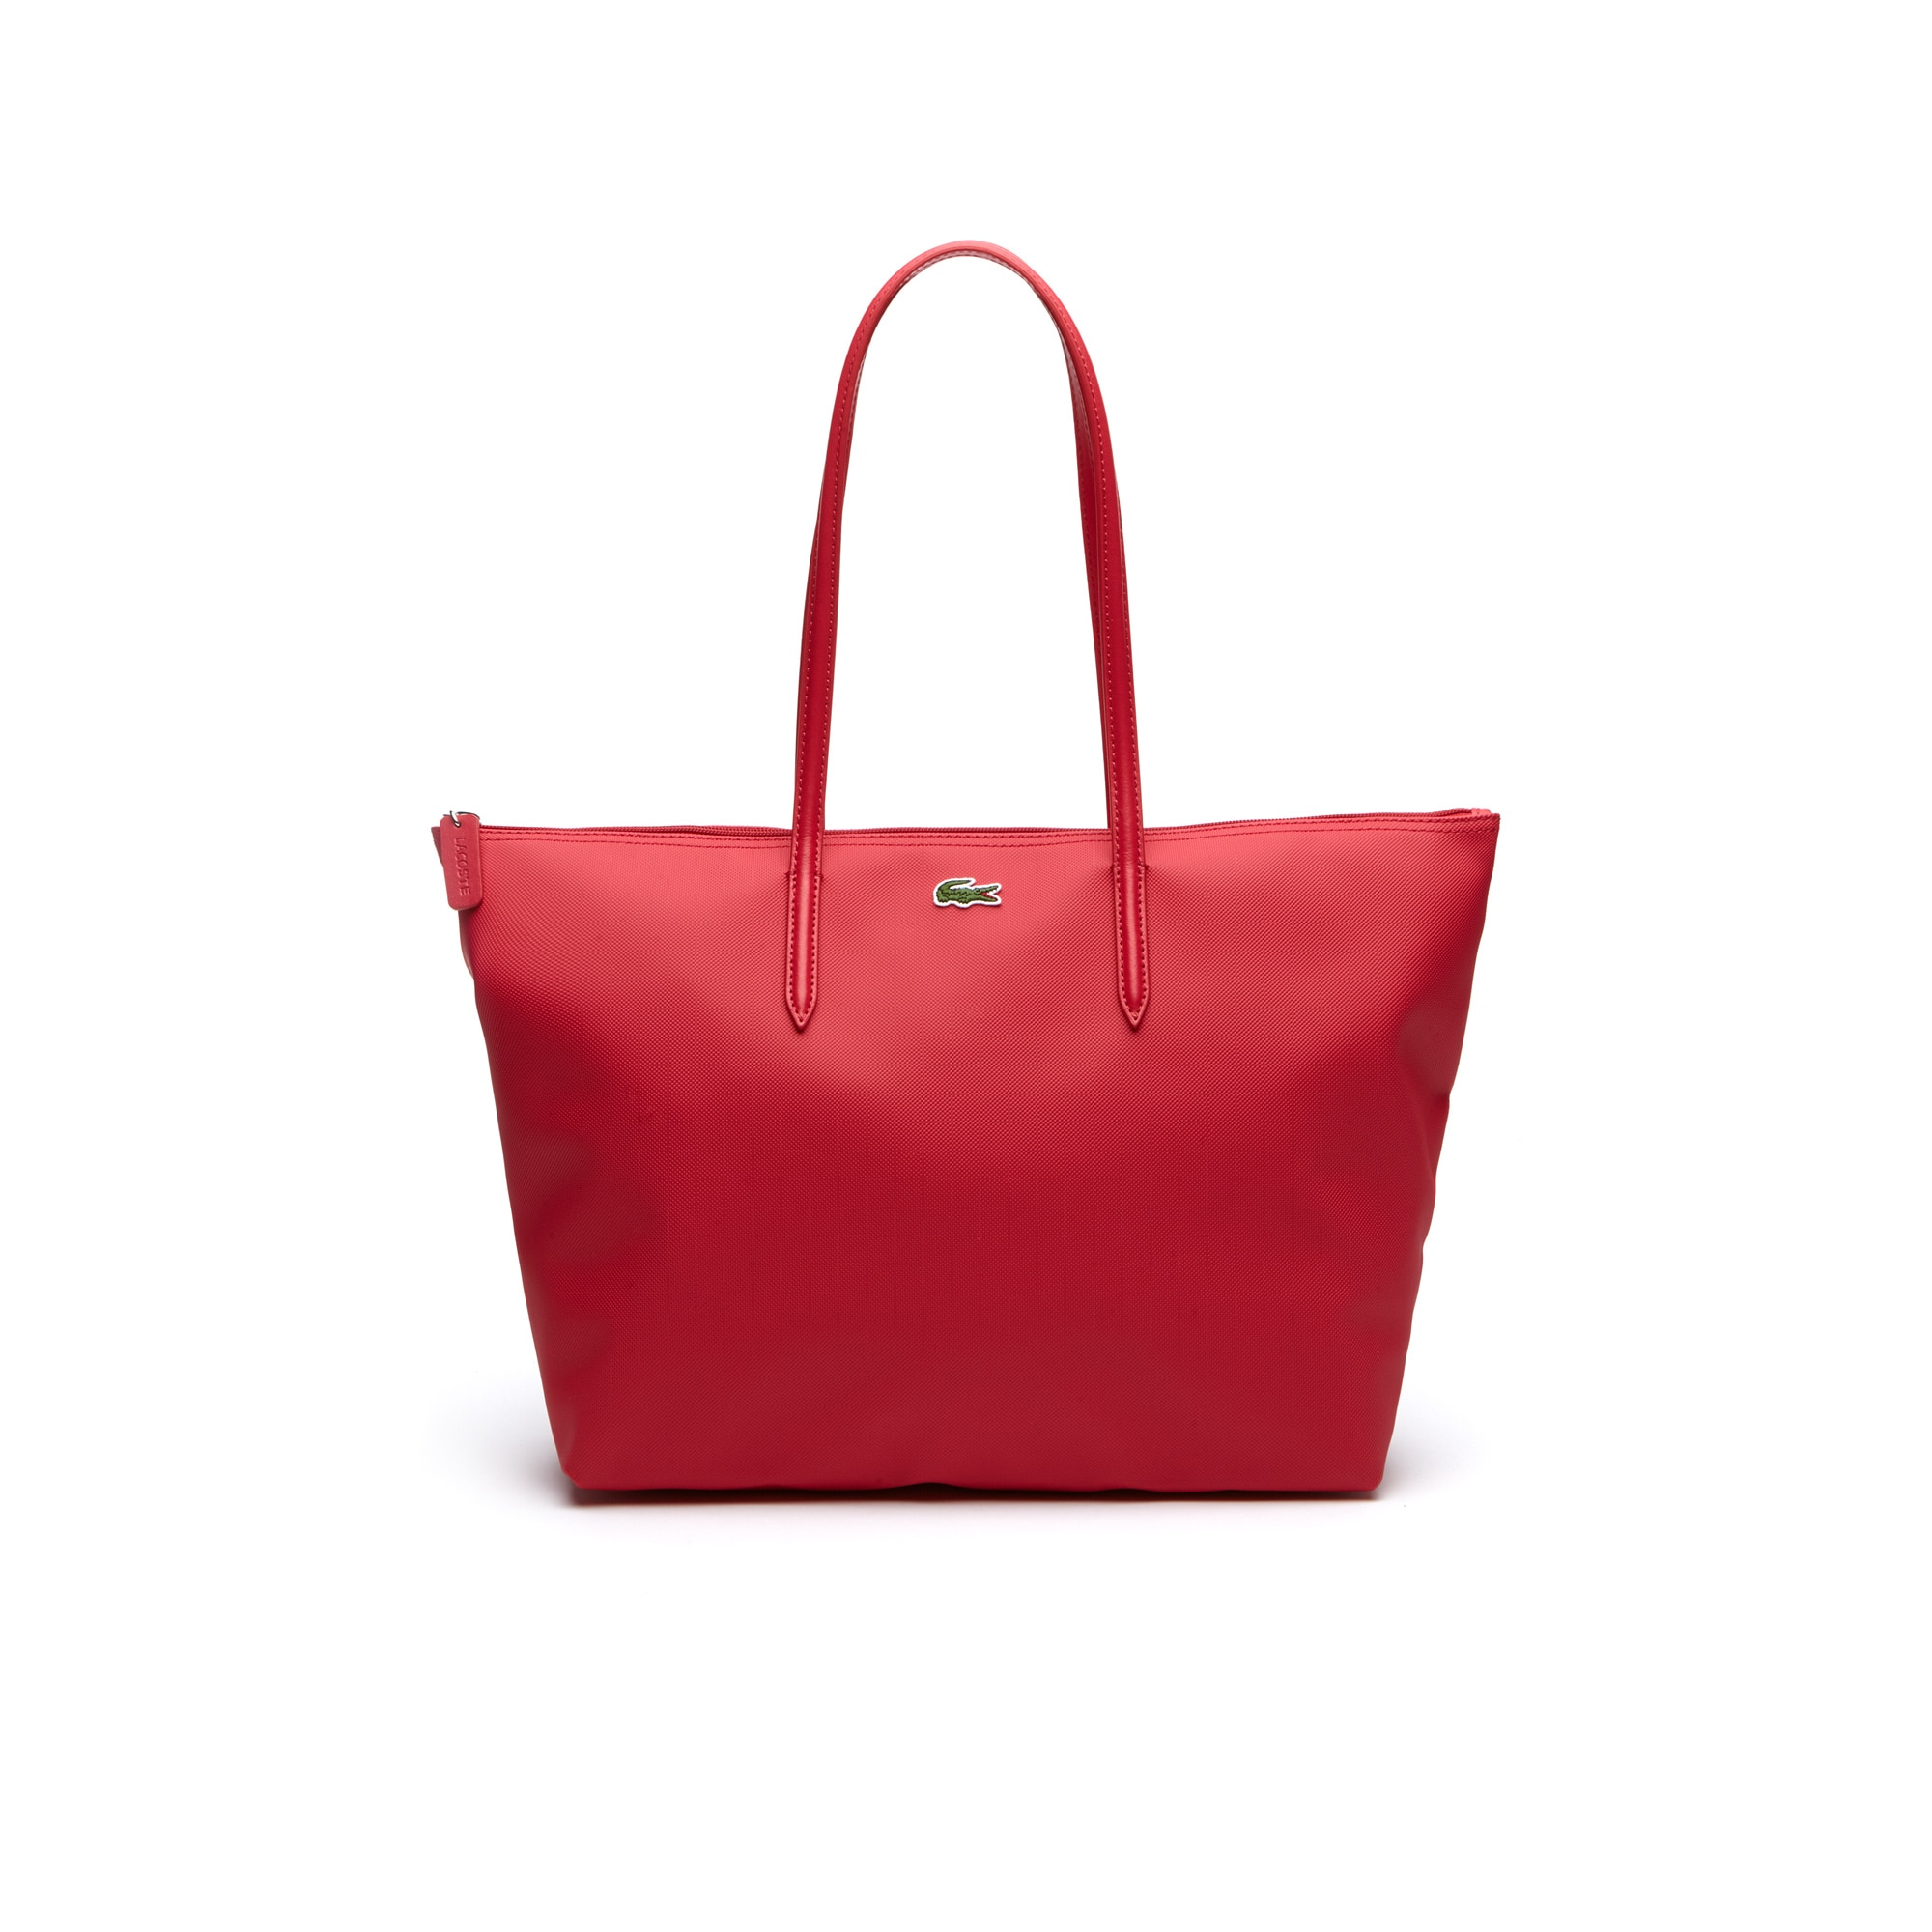 Women's L.12.12 Tote Bag